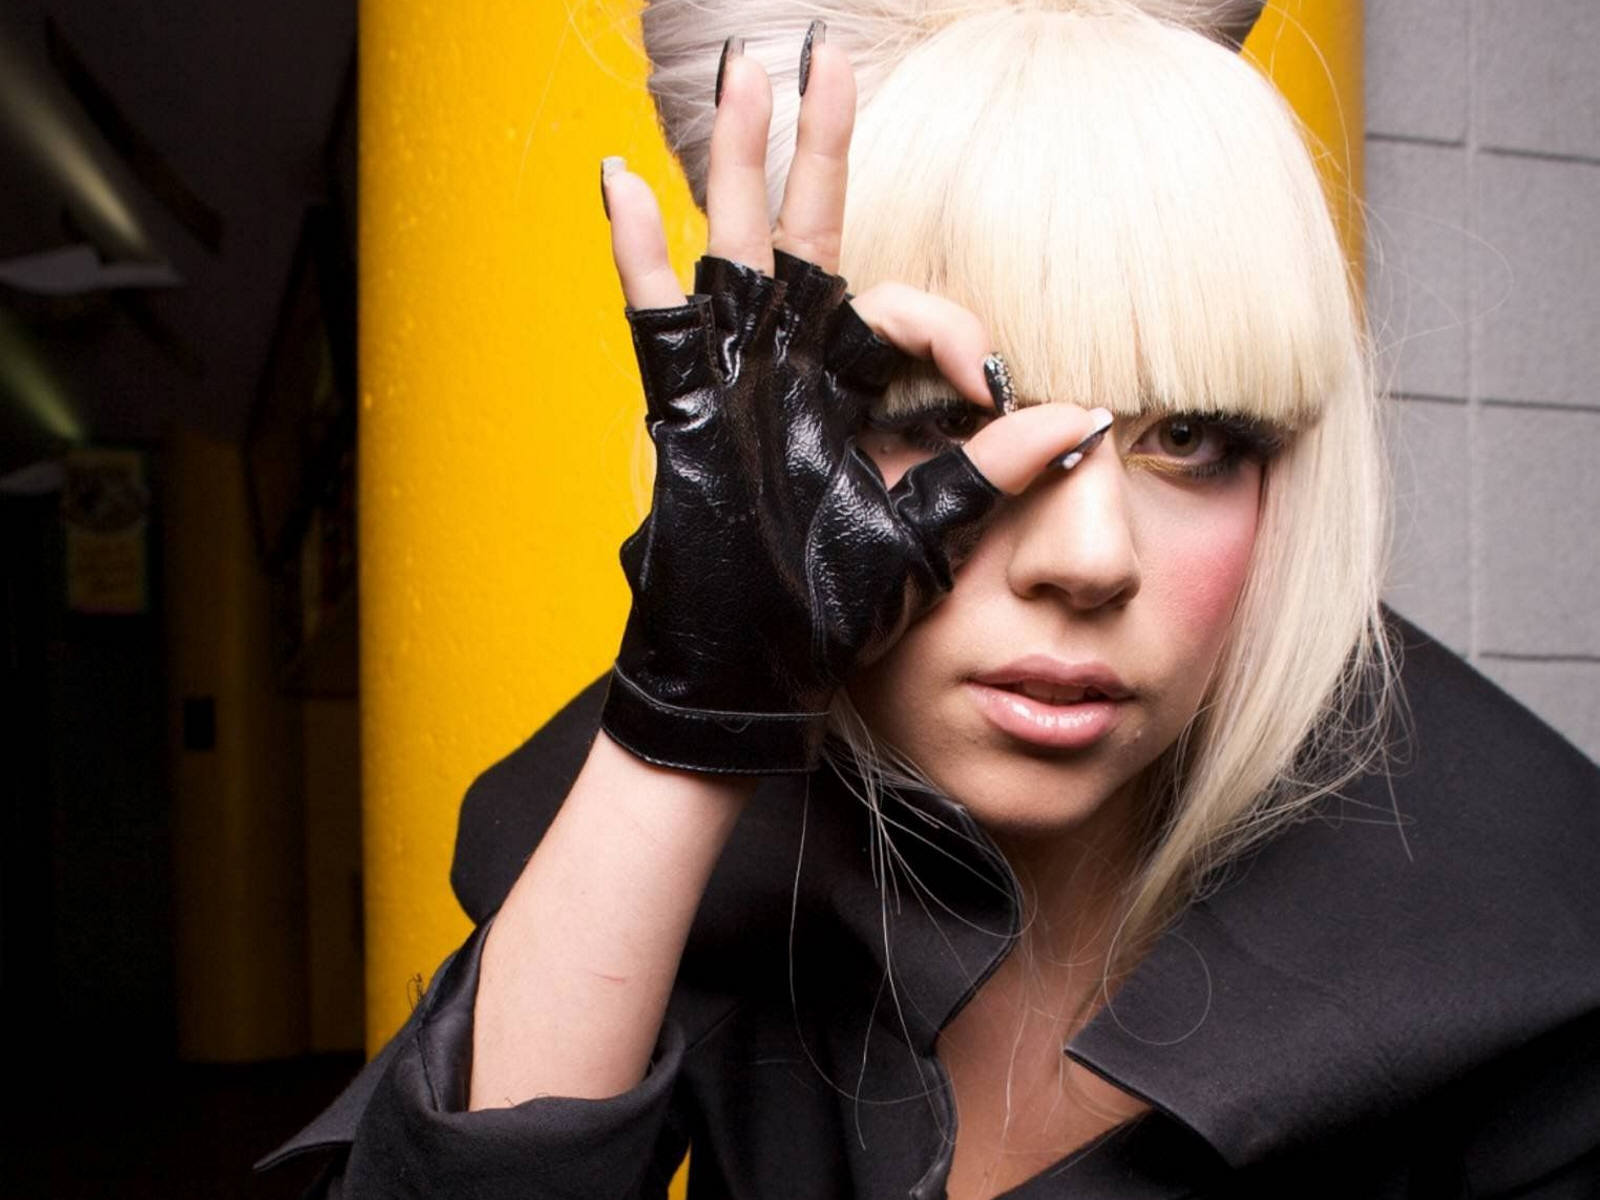 Outrageous singer Lady Gaga wallpapers and images - wallpapers ...